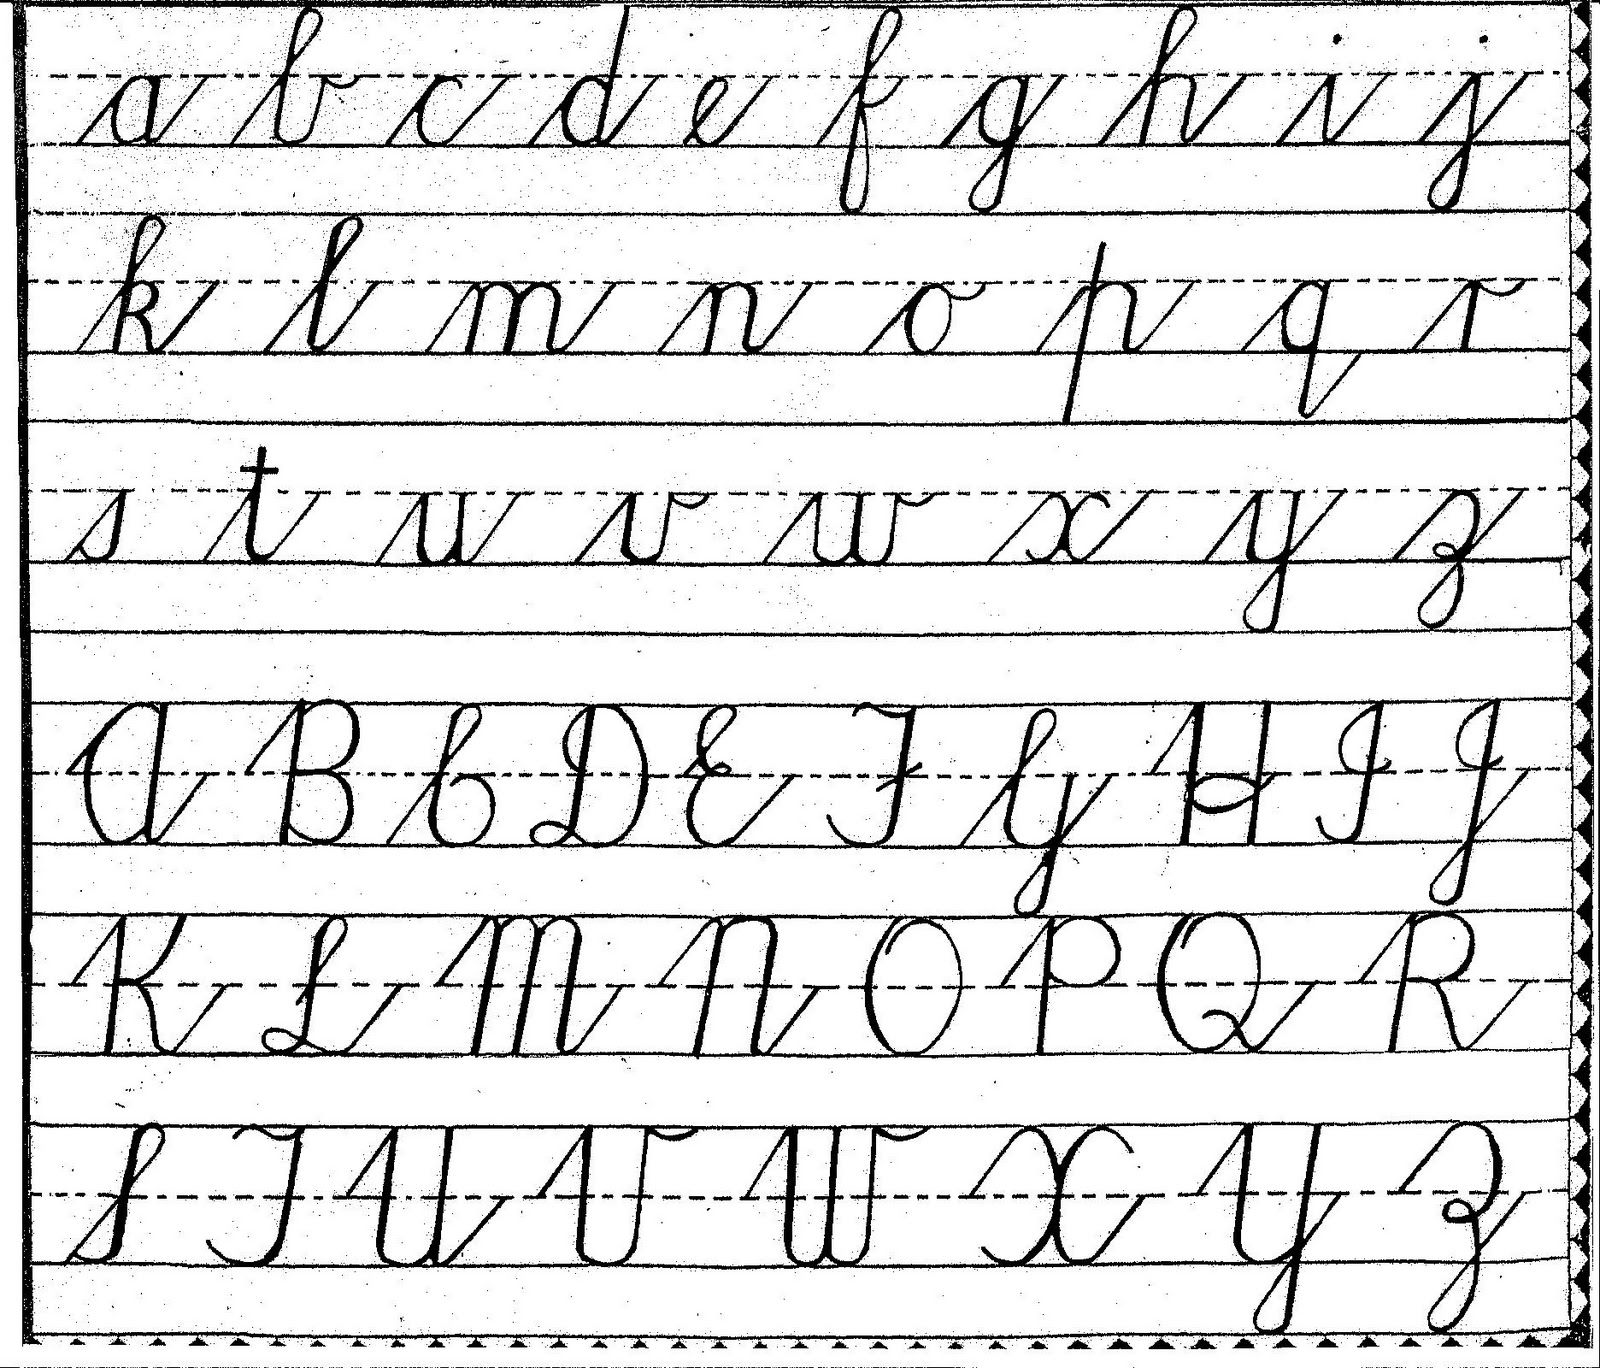 Collection of Free Cursive Handwriting from all over the world ...